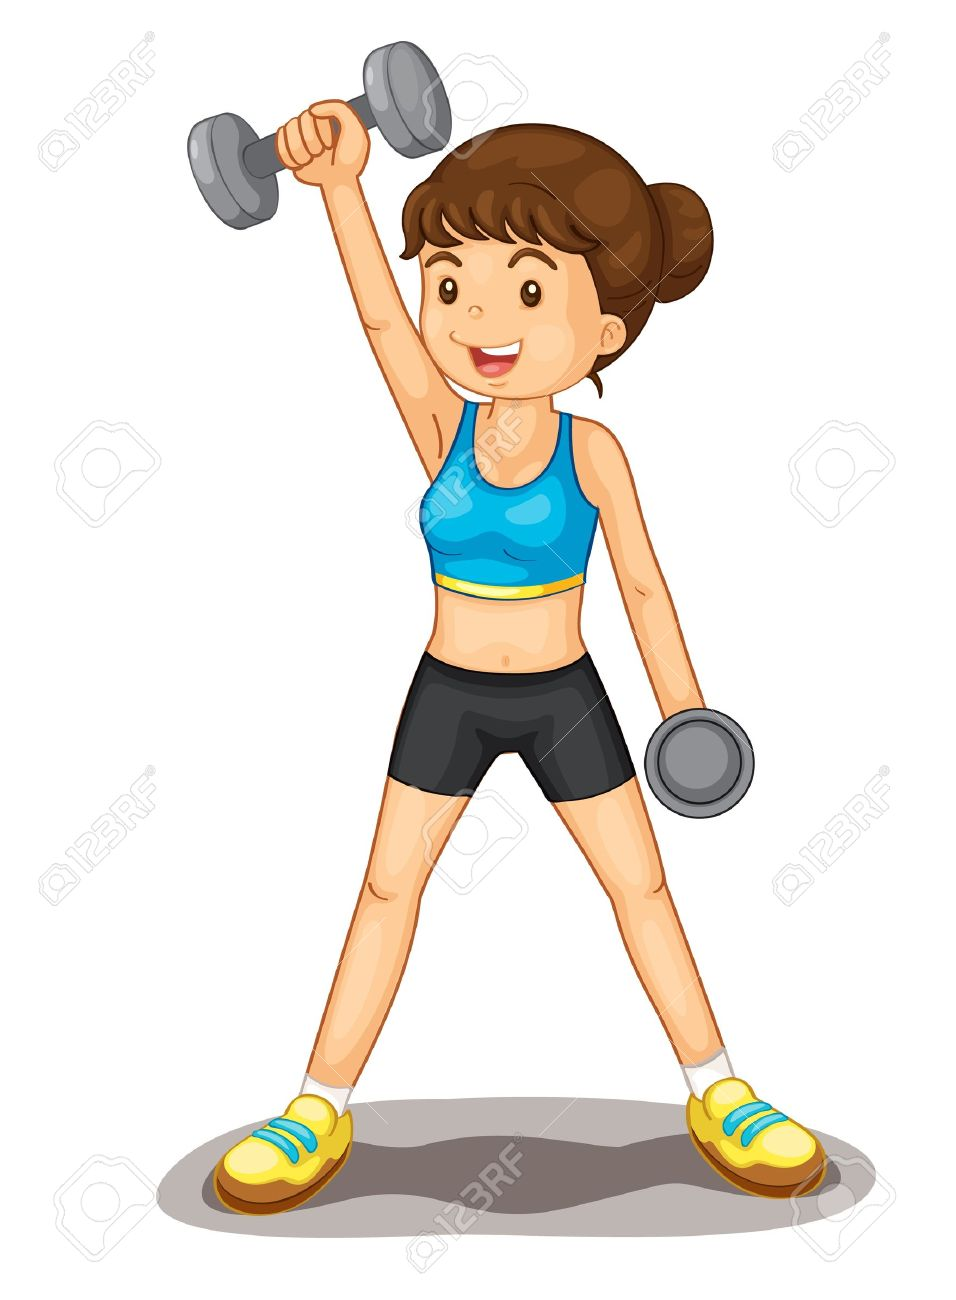 Exercising clipart fitness centre. Exercise panda free images